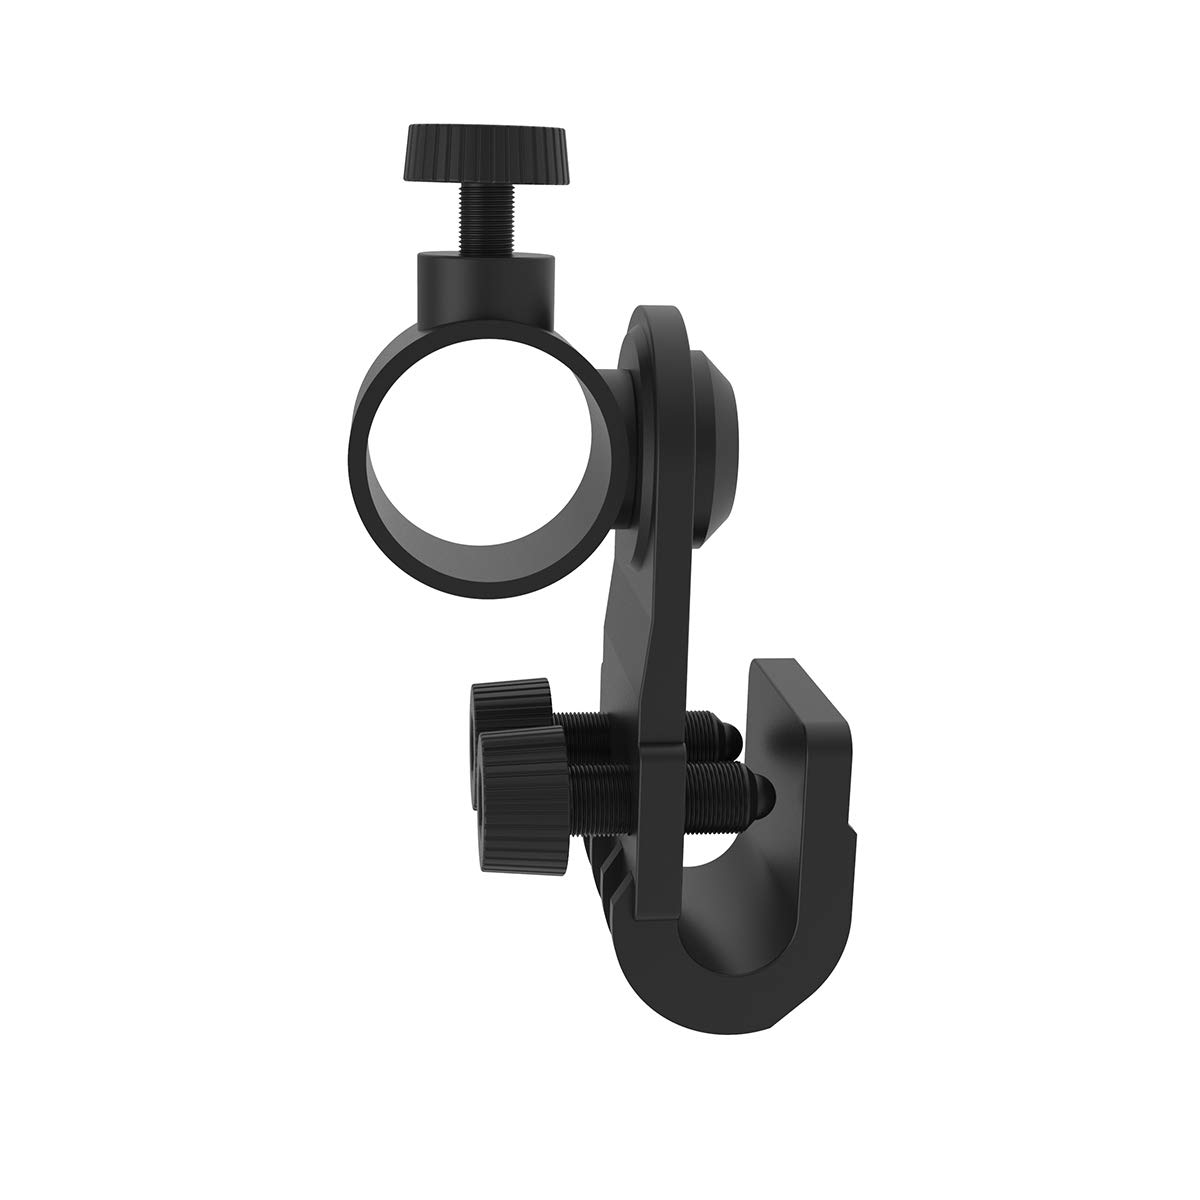 Weltool Helmet Torch Mount Holder - Work Torch Clamp Fit for 3M MSA V-GARD Hard Hat - Portable Plastic Torch Side Mount Torch Holder for Hard Hat - Light-weight Multi-angle